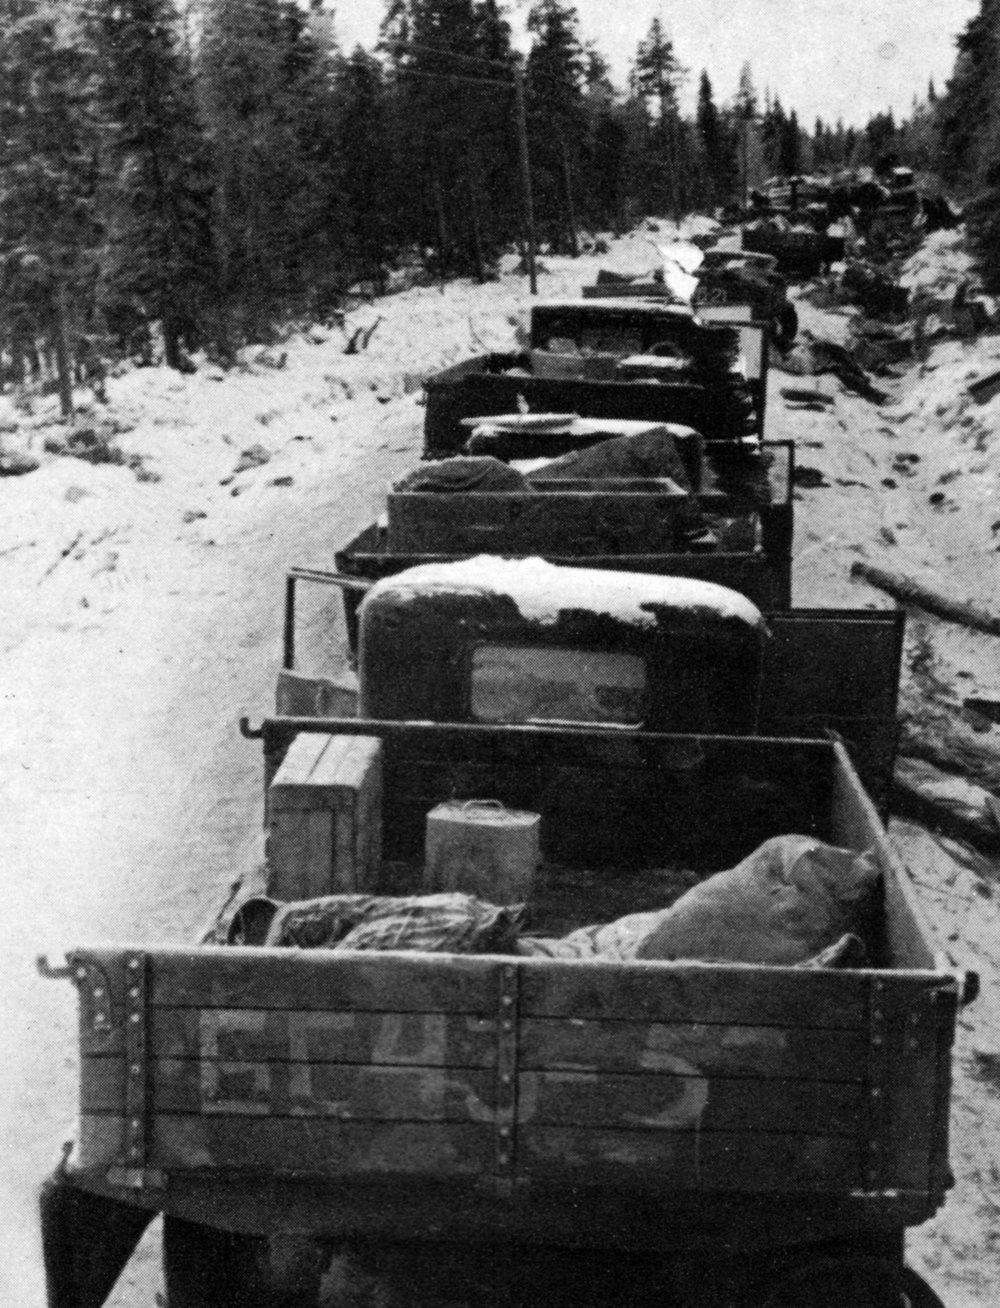 Destroyed Soviet trucks in the Winter War 1940